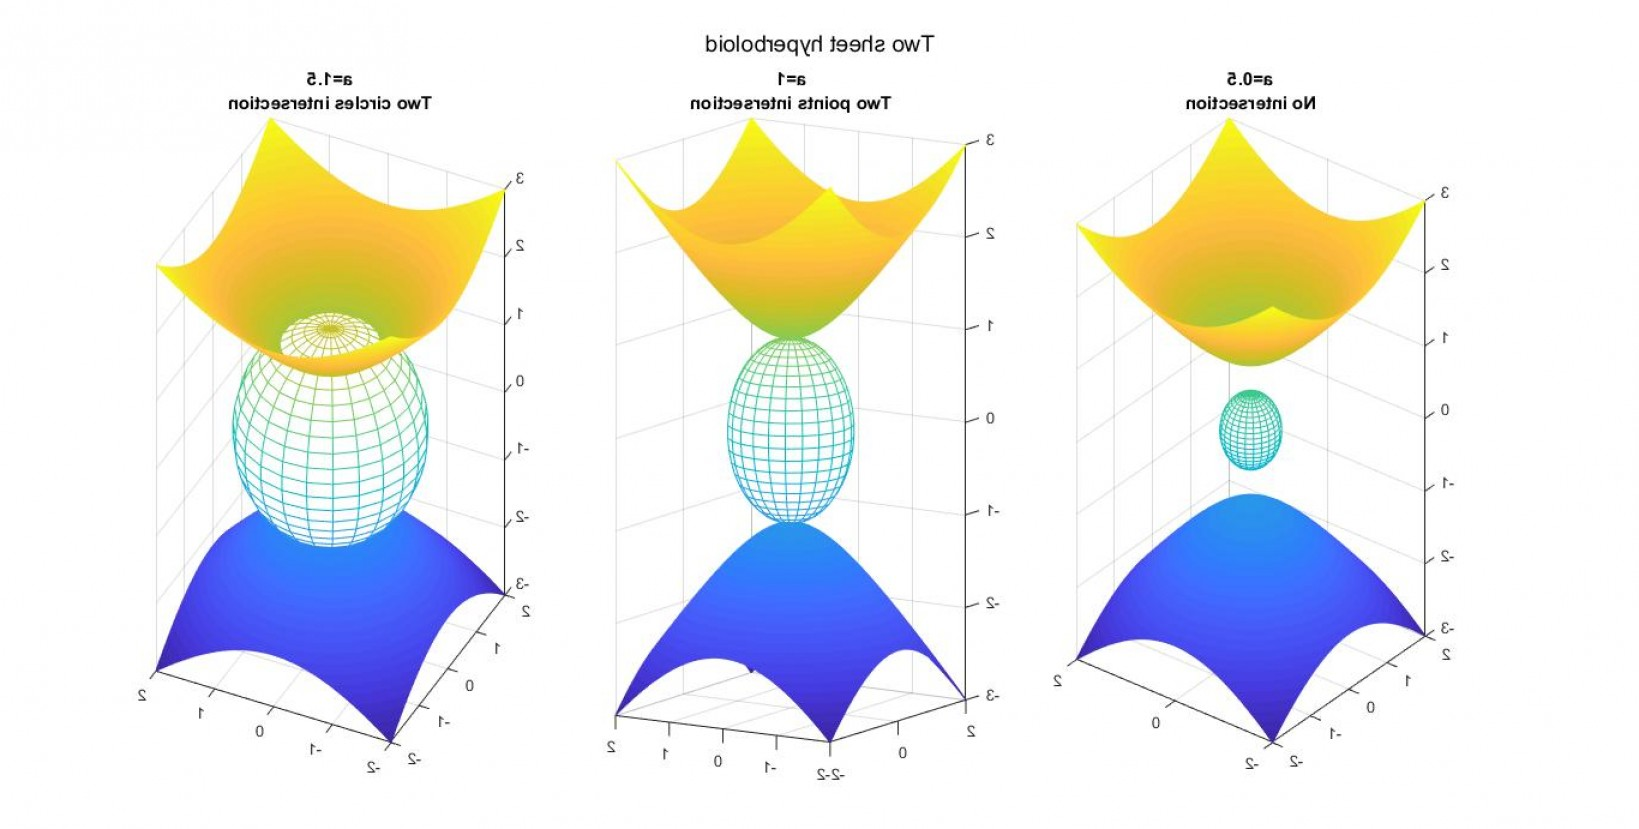 Point Of A Unit Normal Vector A Vector Intersects: When Is The Intersection Of The Hyperboloid With The Sphere Transverse